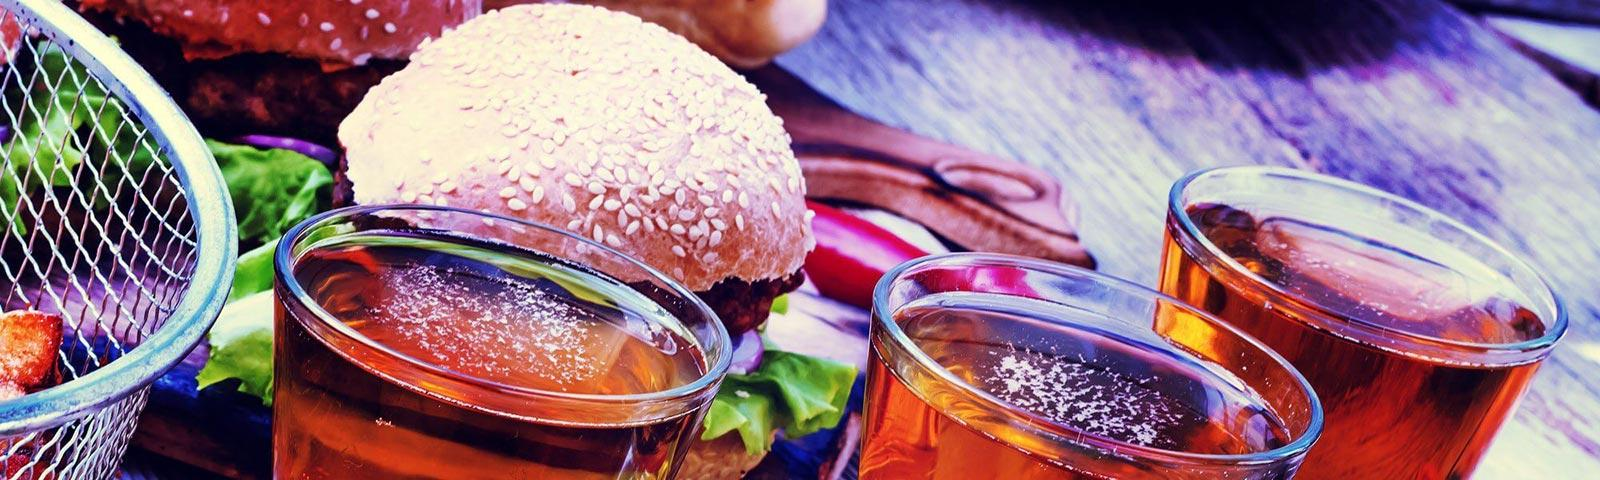 Close up on on a burger on a plate and glasses filled with a drink.